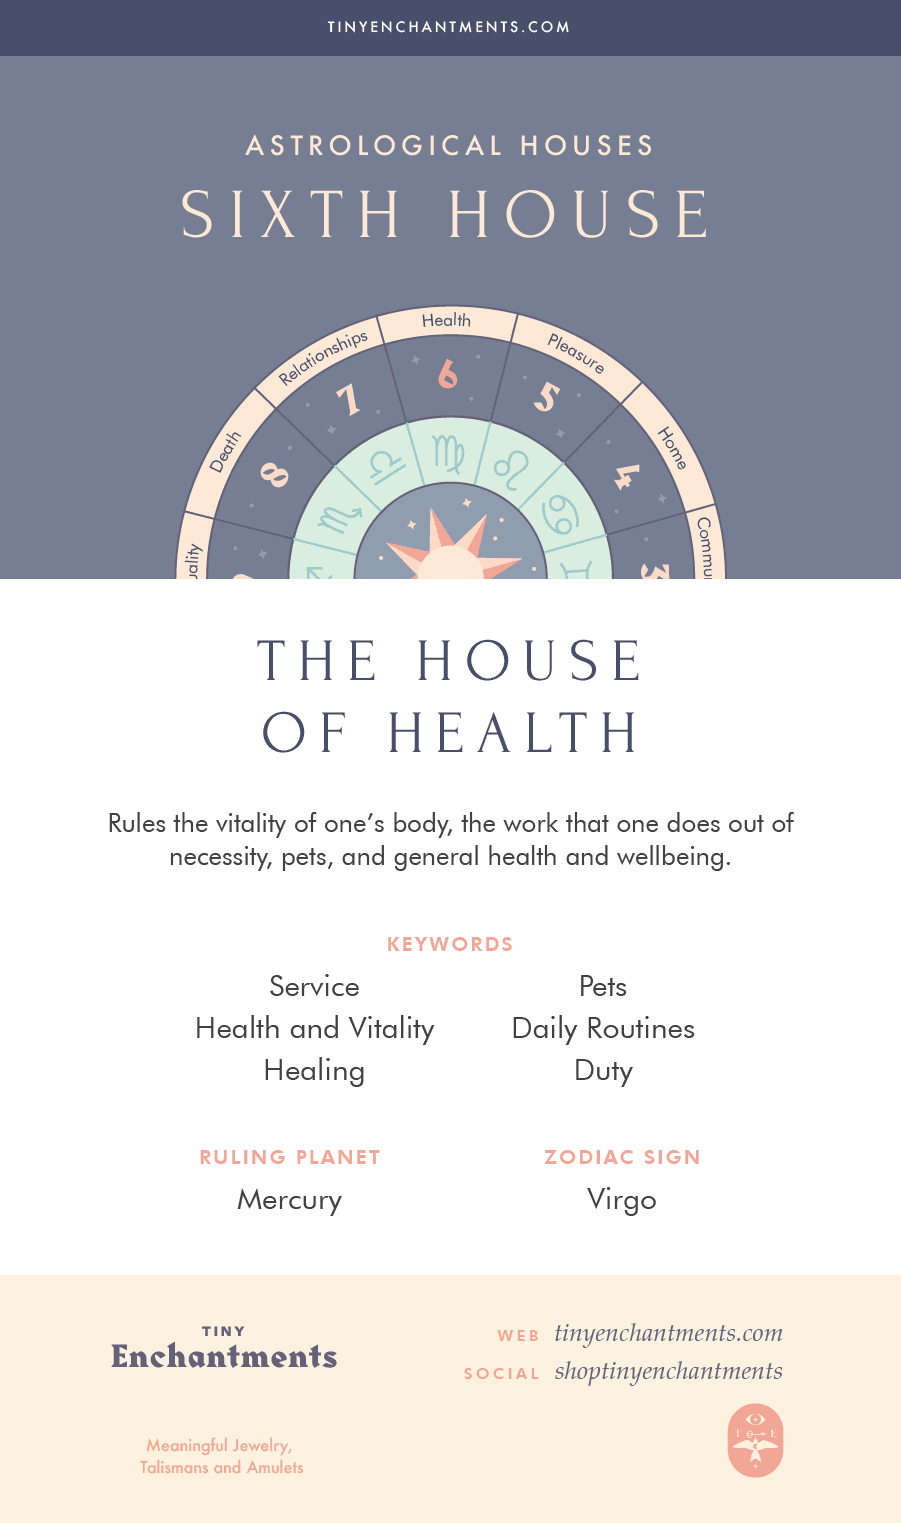 The Sixth House - The House of Health - 6th House in Astrology, Meaning, Ruling Planets, Ruling Zodiac Signs